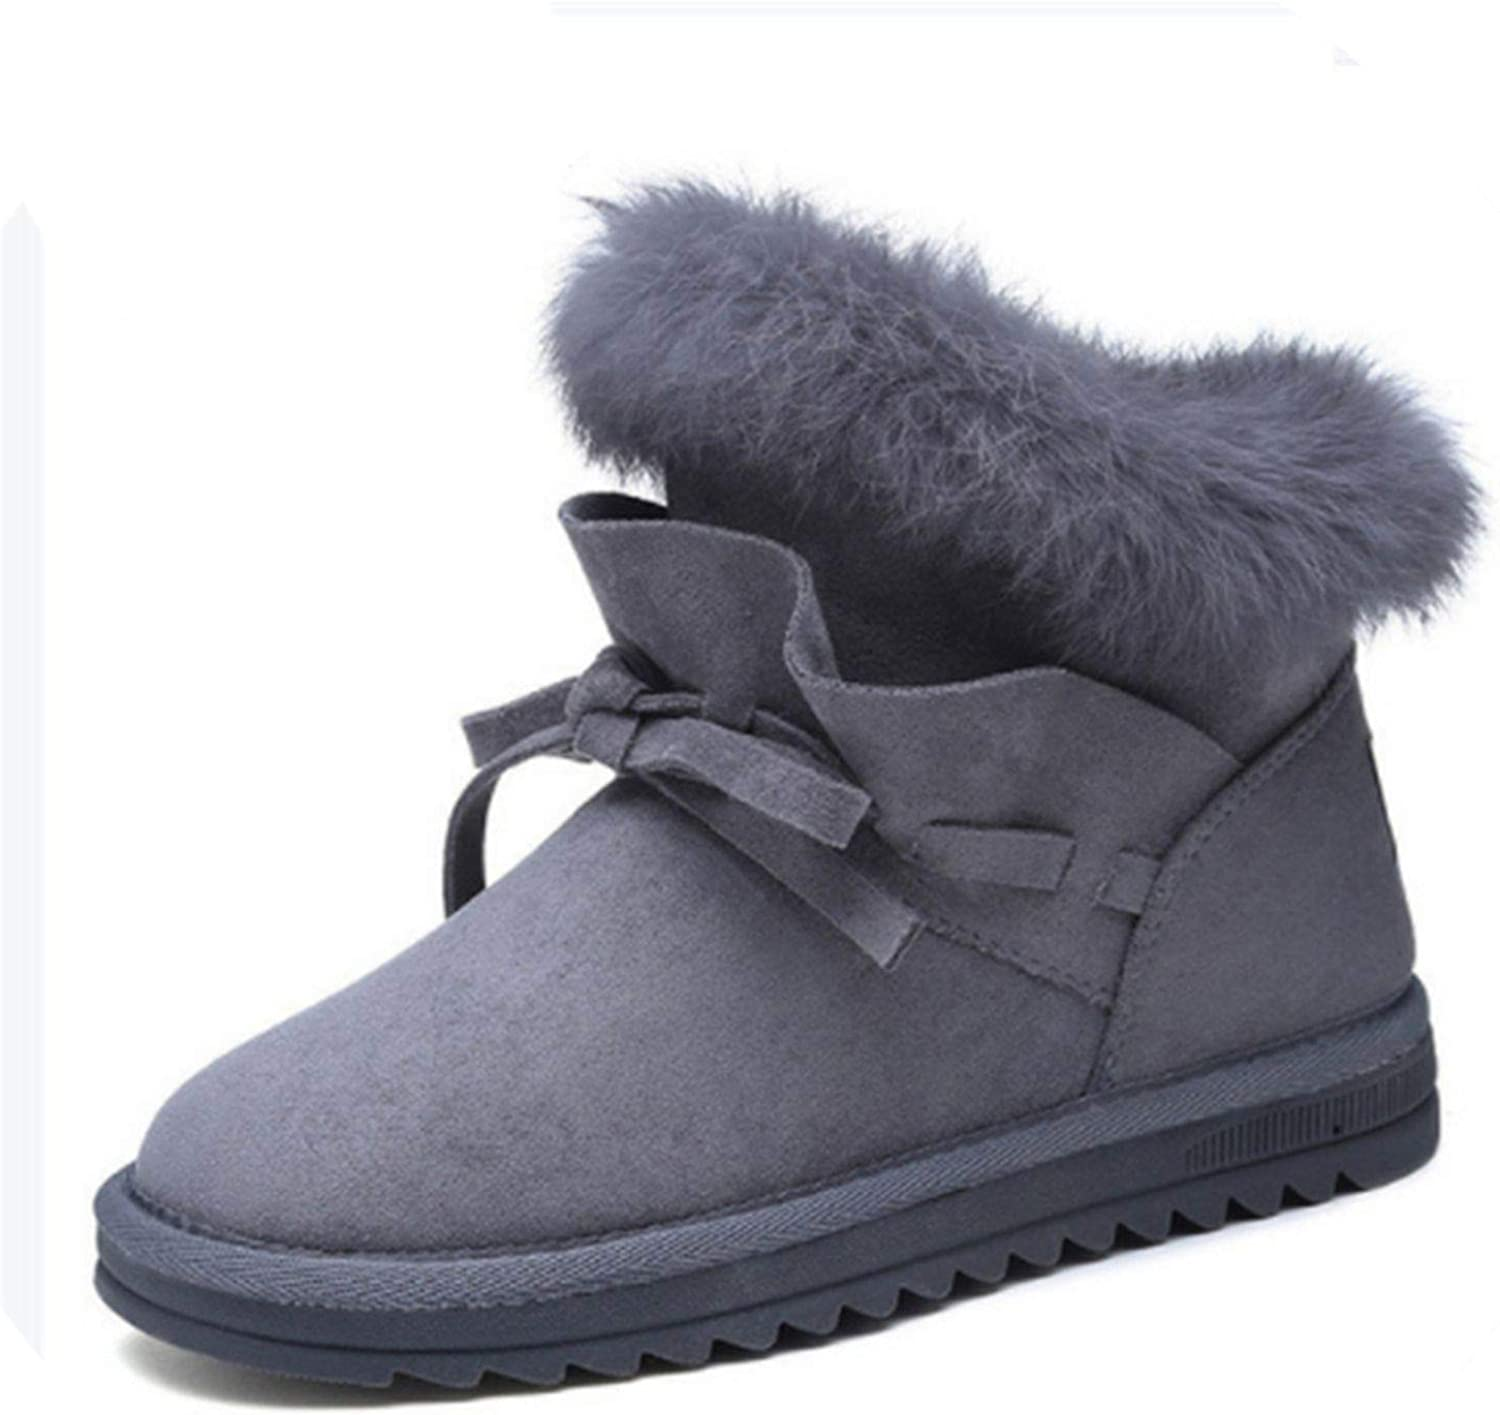 2018 New Bow-Knot and Ruffles Snow Boots Women's Hair Short Ankle Boot Plus Velvet Cotton shoes